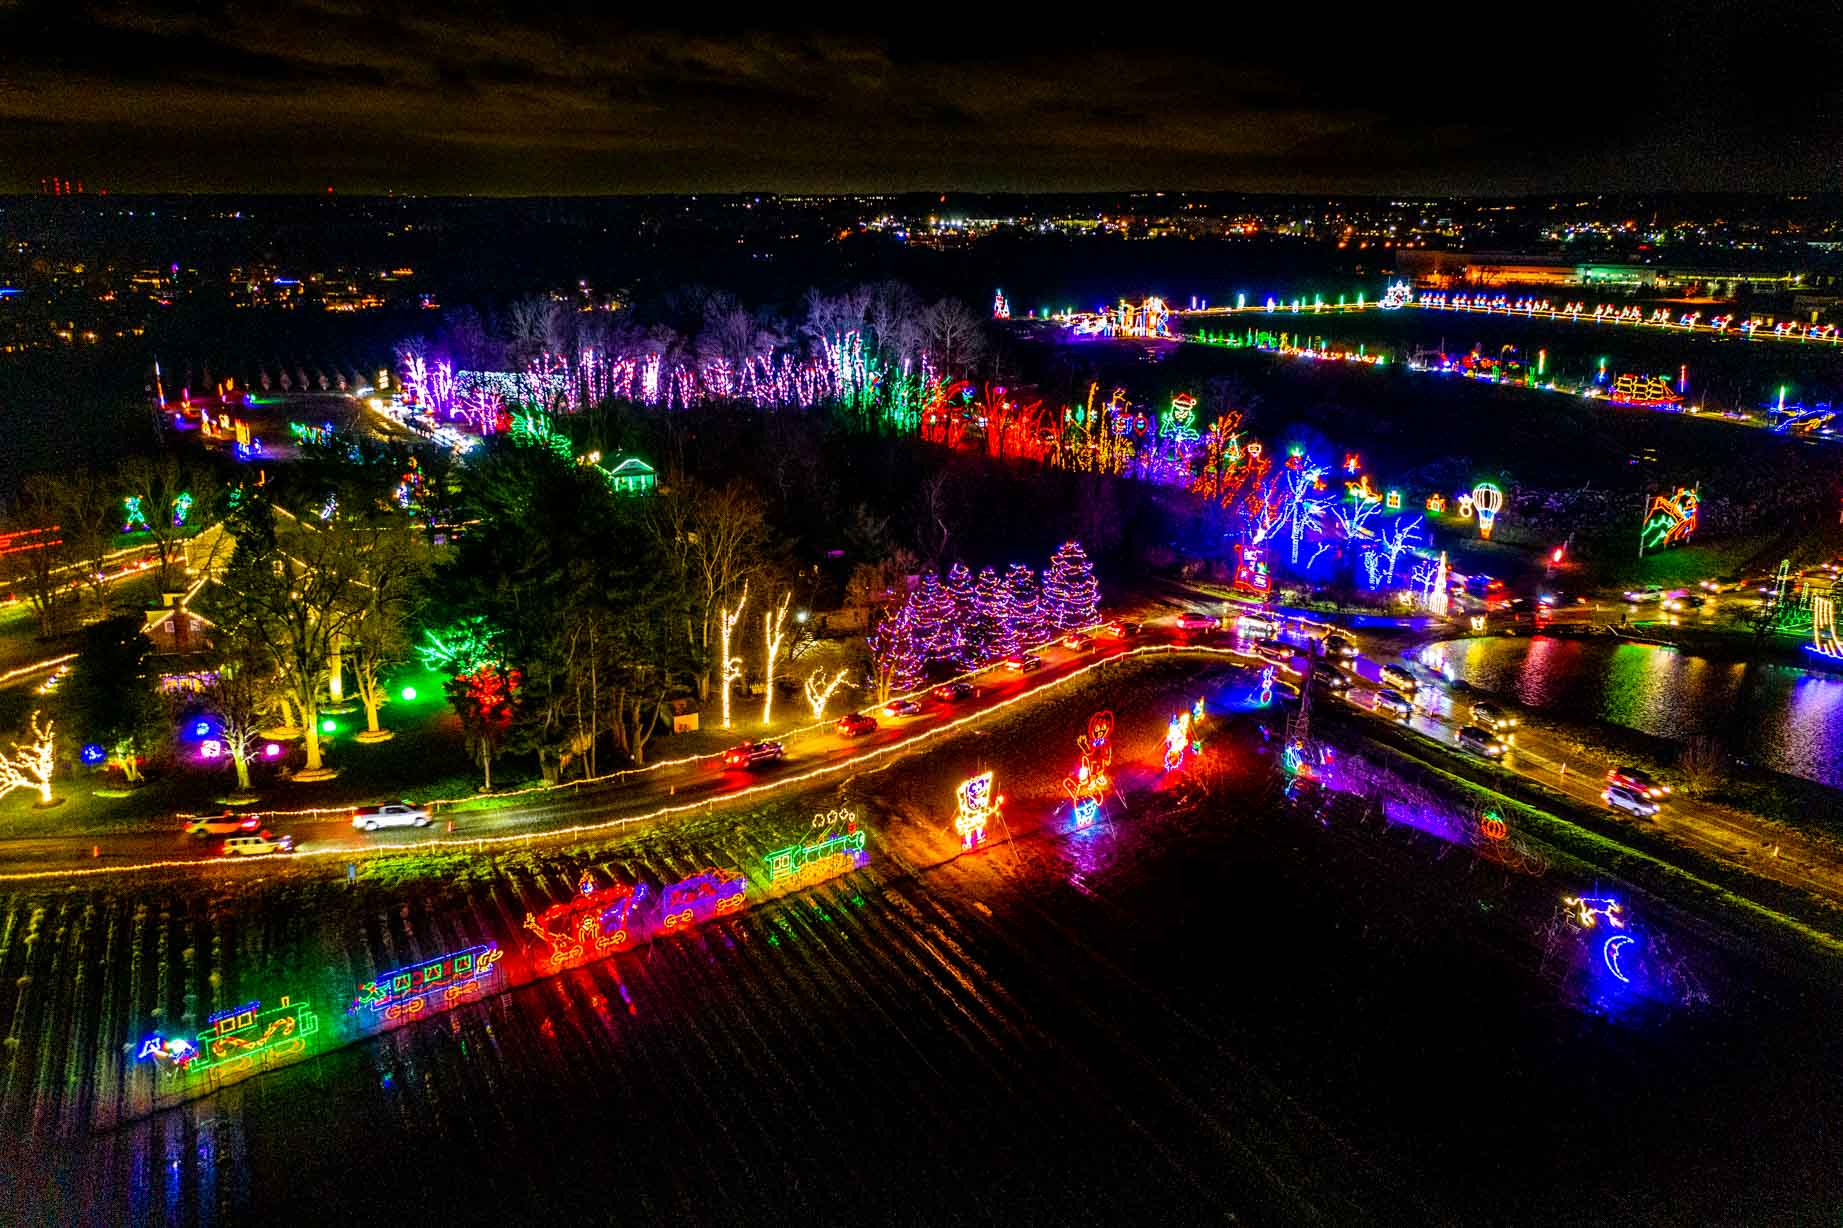 Overhead view of a Christmas light trail lit up at night